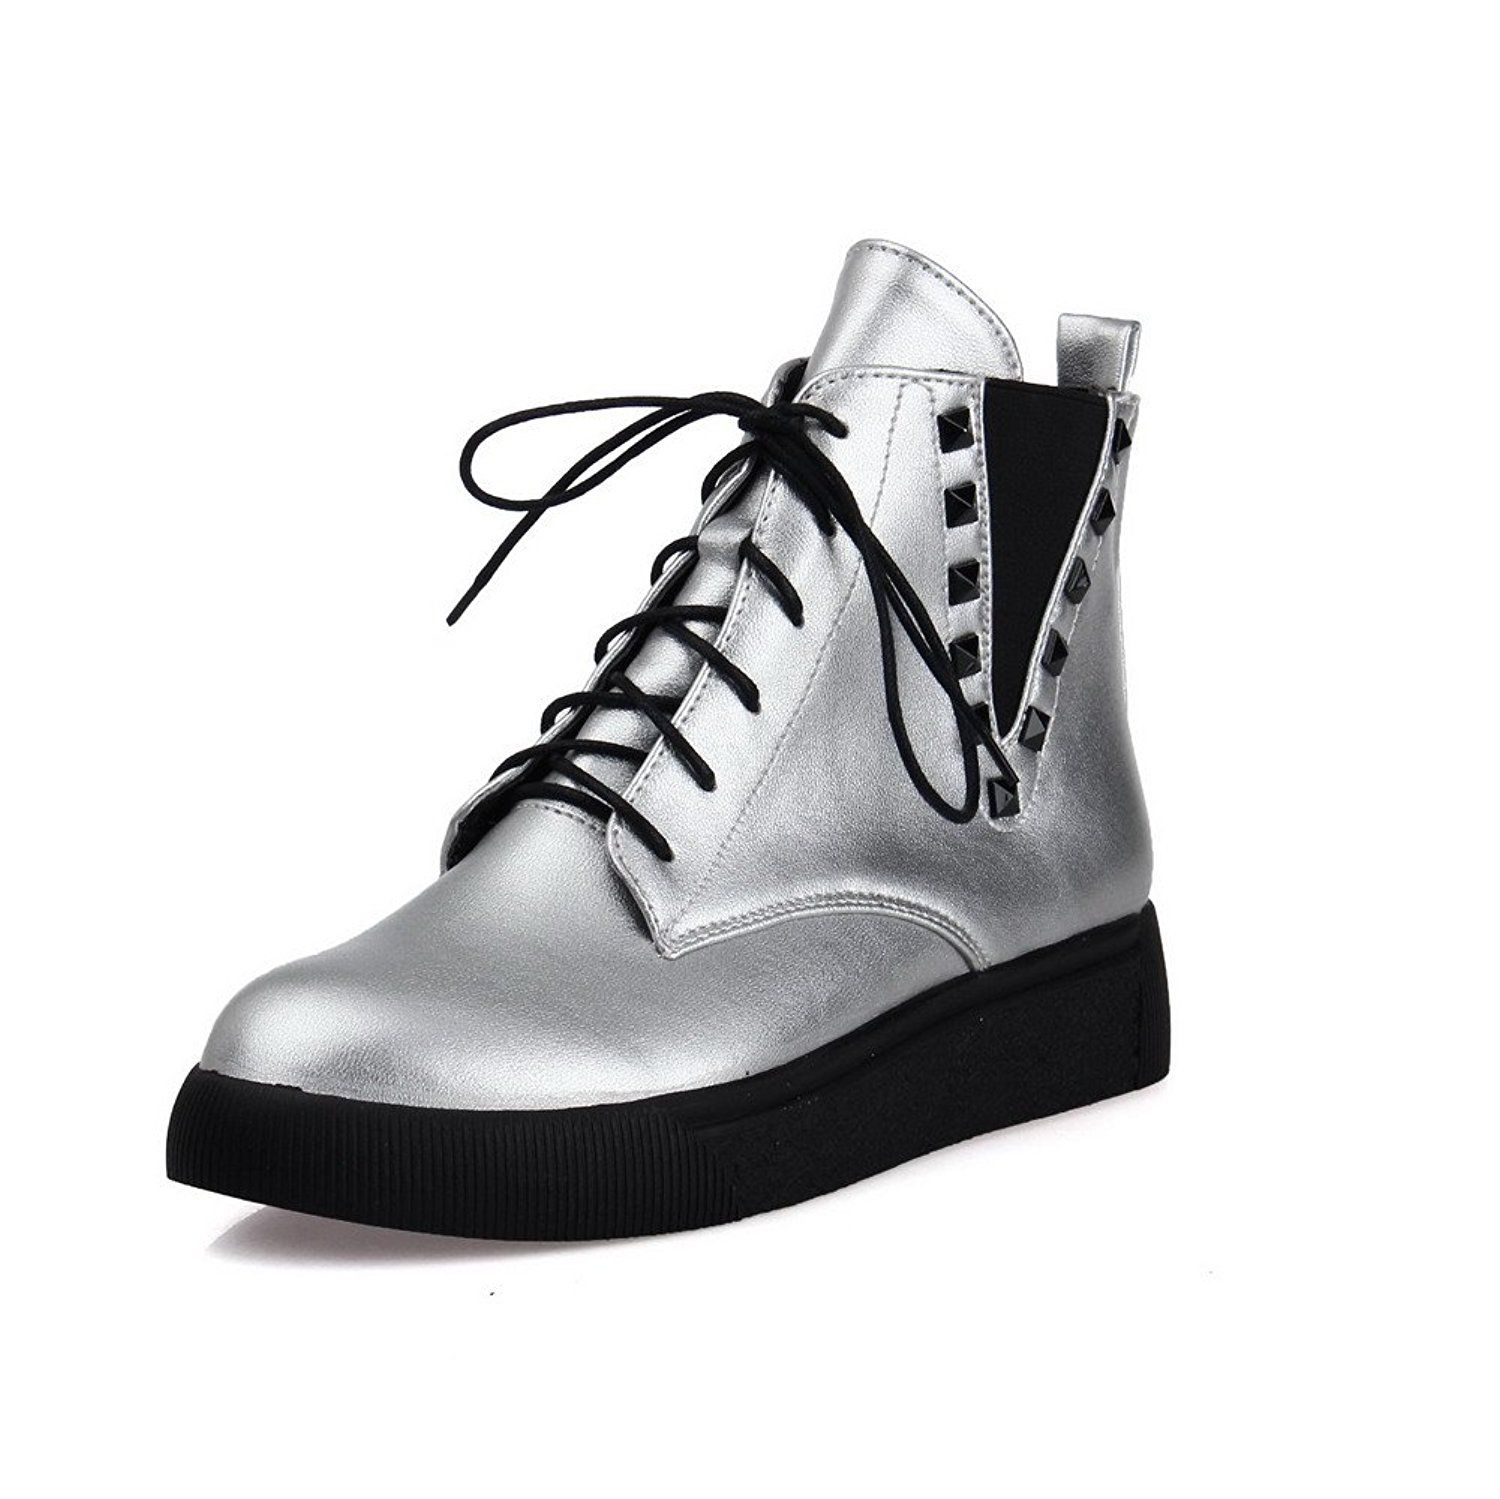 WeiPoot Women's Soft Material Round Closed Toe Solid Low top Low-Heels Boots * Find out more about the great product at the image link.